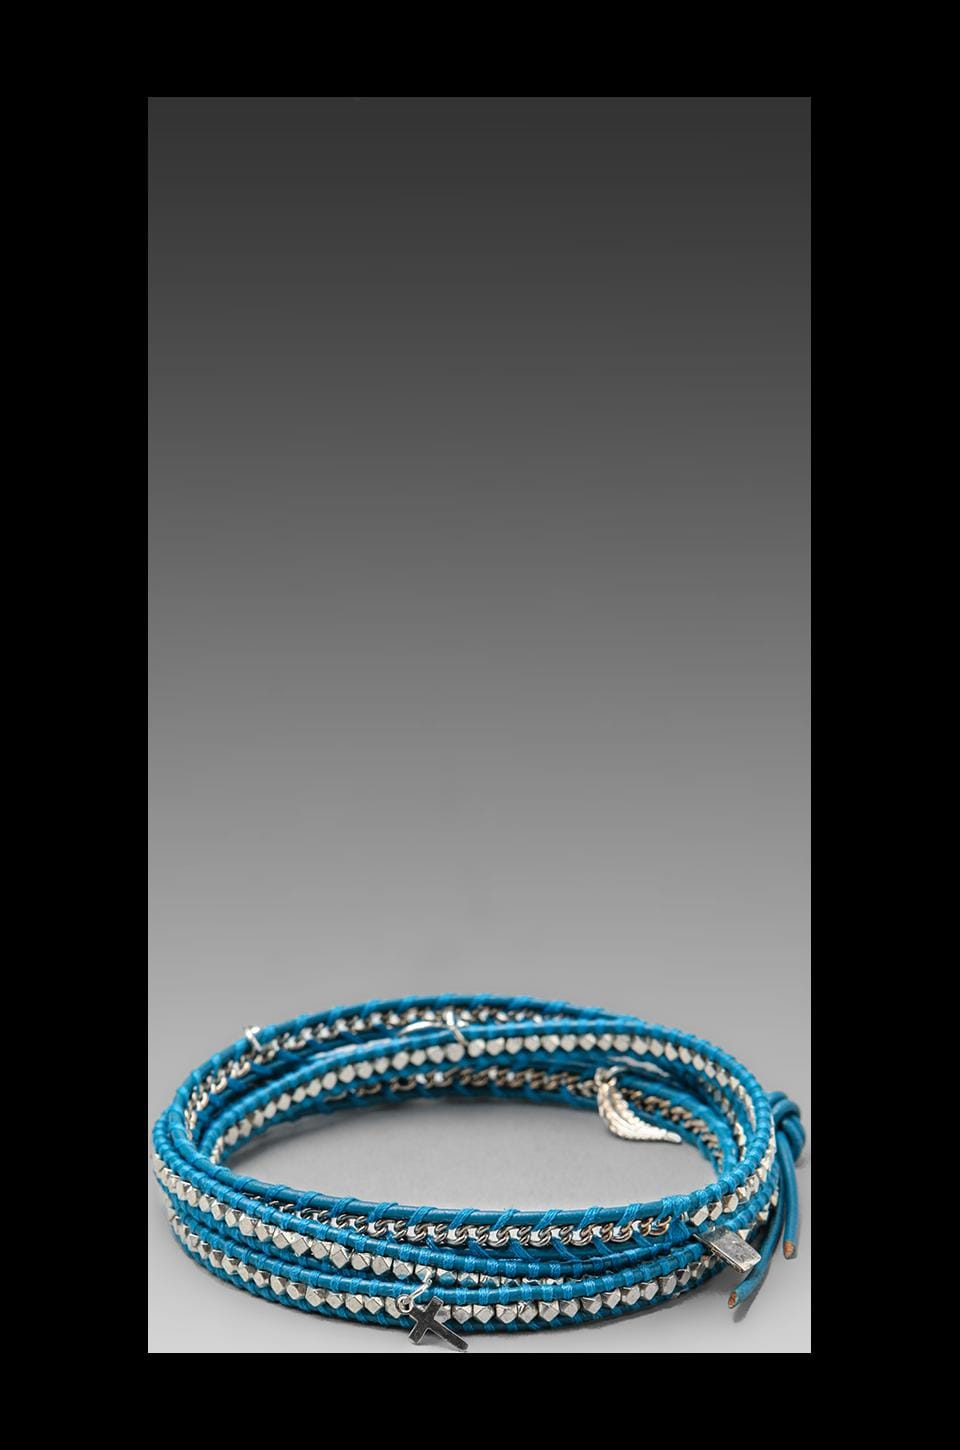 CHAN LUU Threaded Wrap Charm Bracelet in Light Blue/Silver